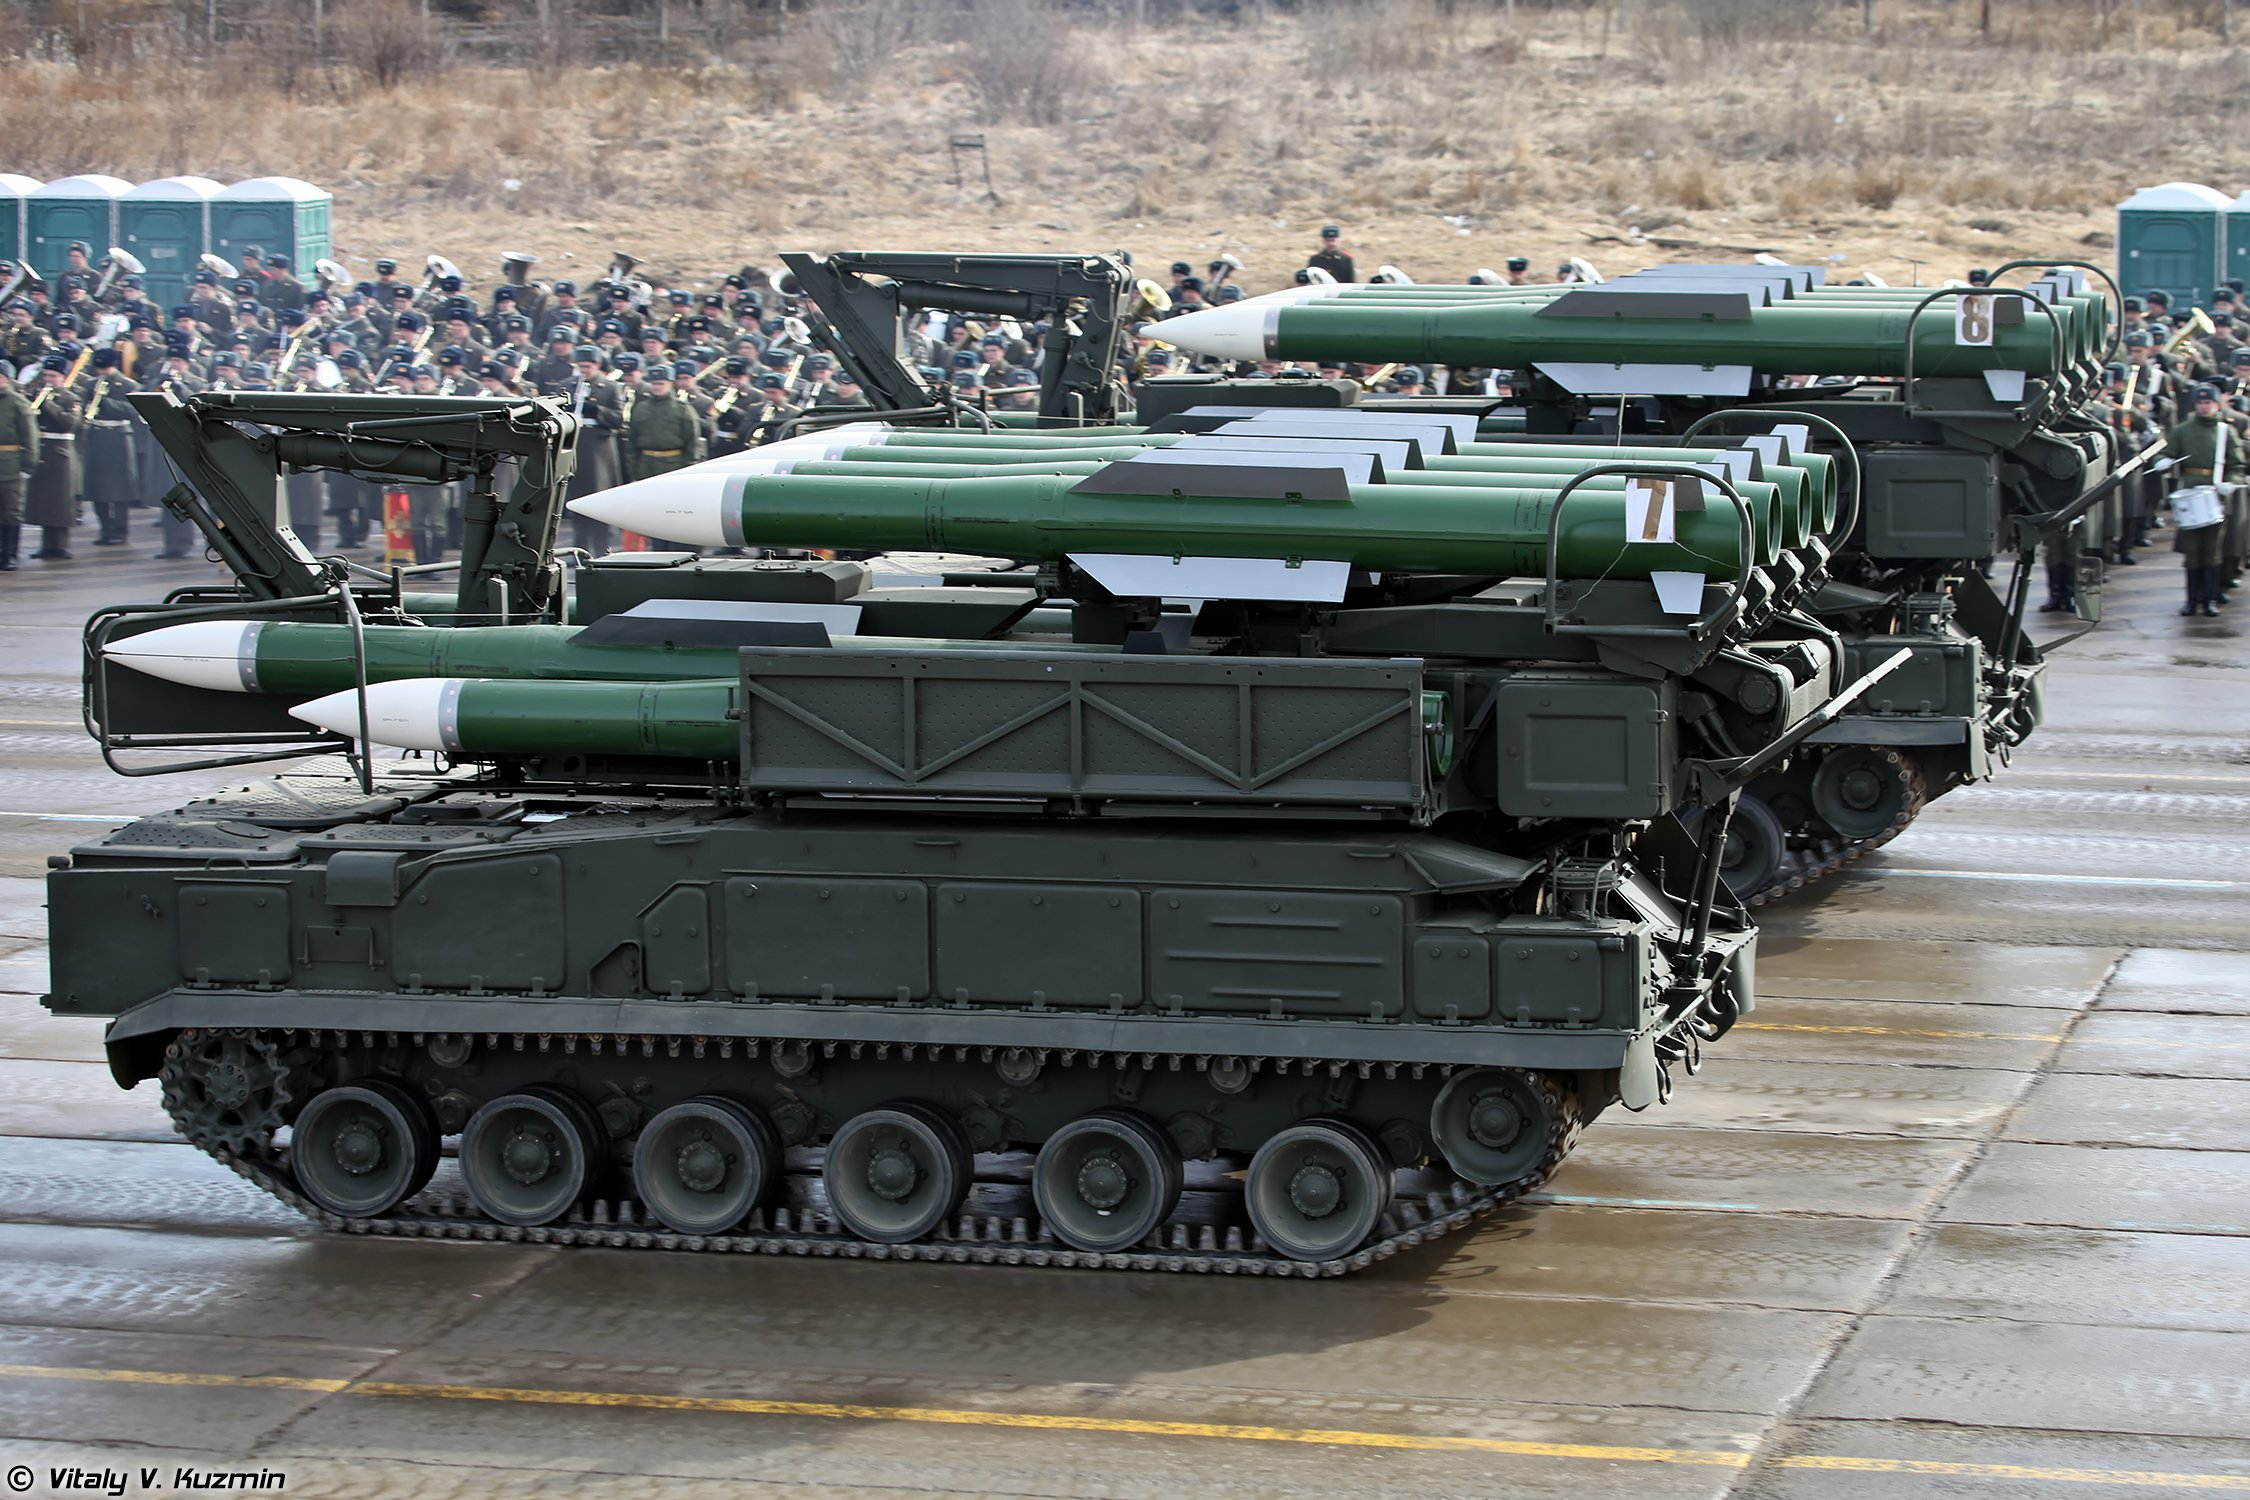 9A316 transporter erector launcher and transloader for Buk-M2 air defence system missile April 9th rehearsal in Alabino of 2014 Victory Day Parade Russia military army russian